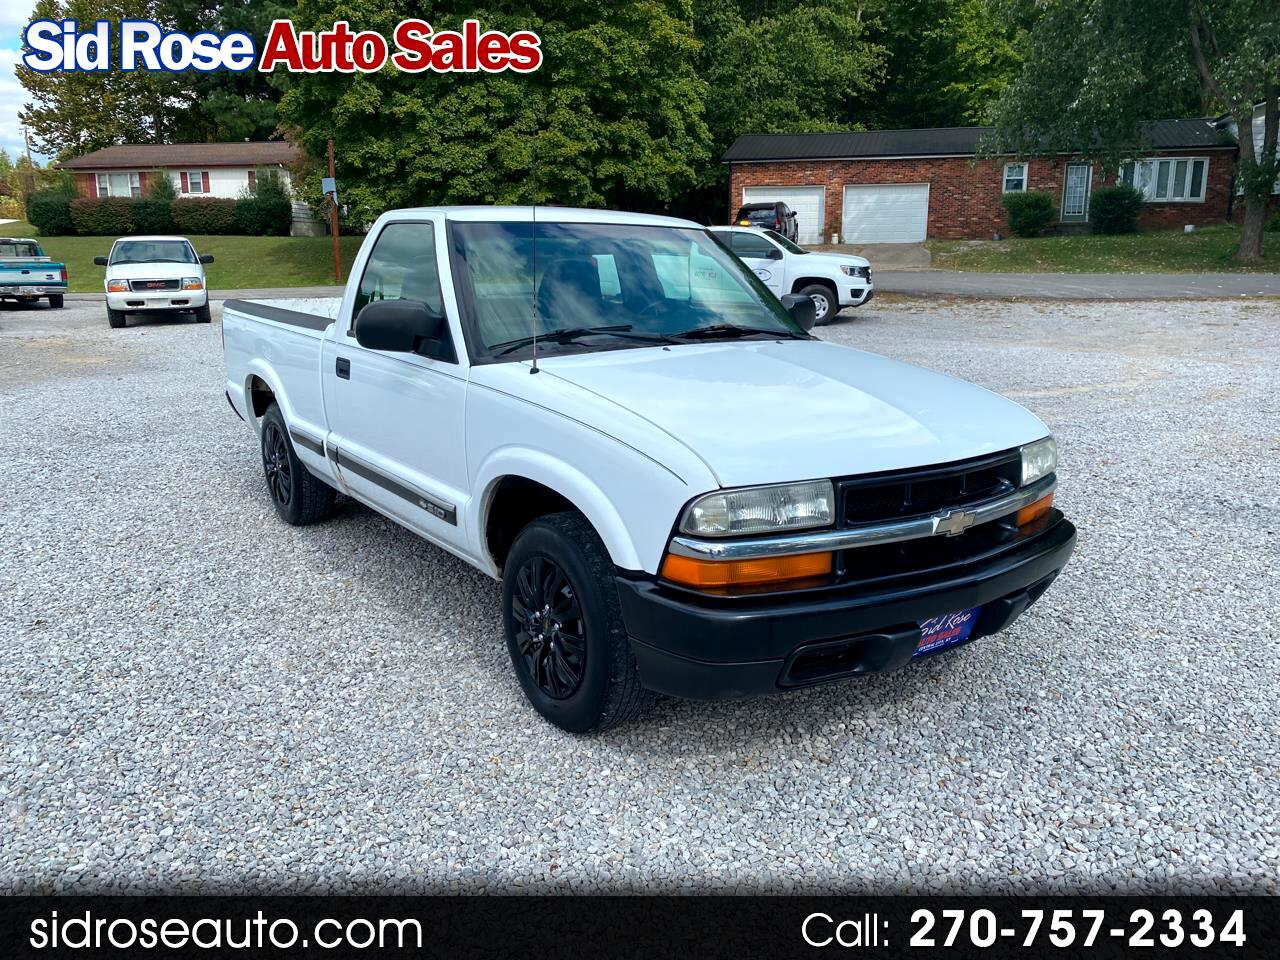 used cars central city ky used cars trucks ky sid rose auto sales used cars central city ky used cars